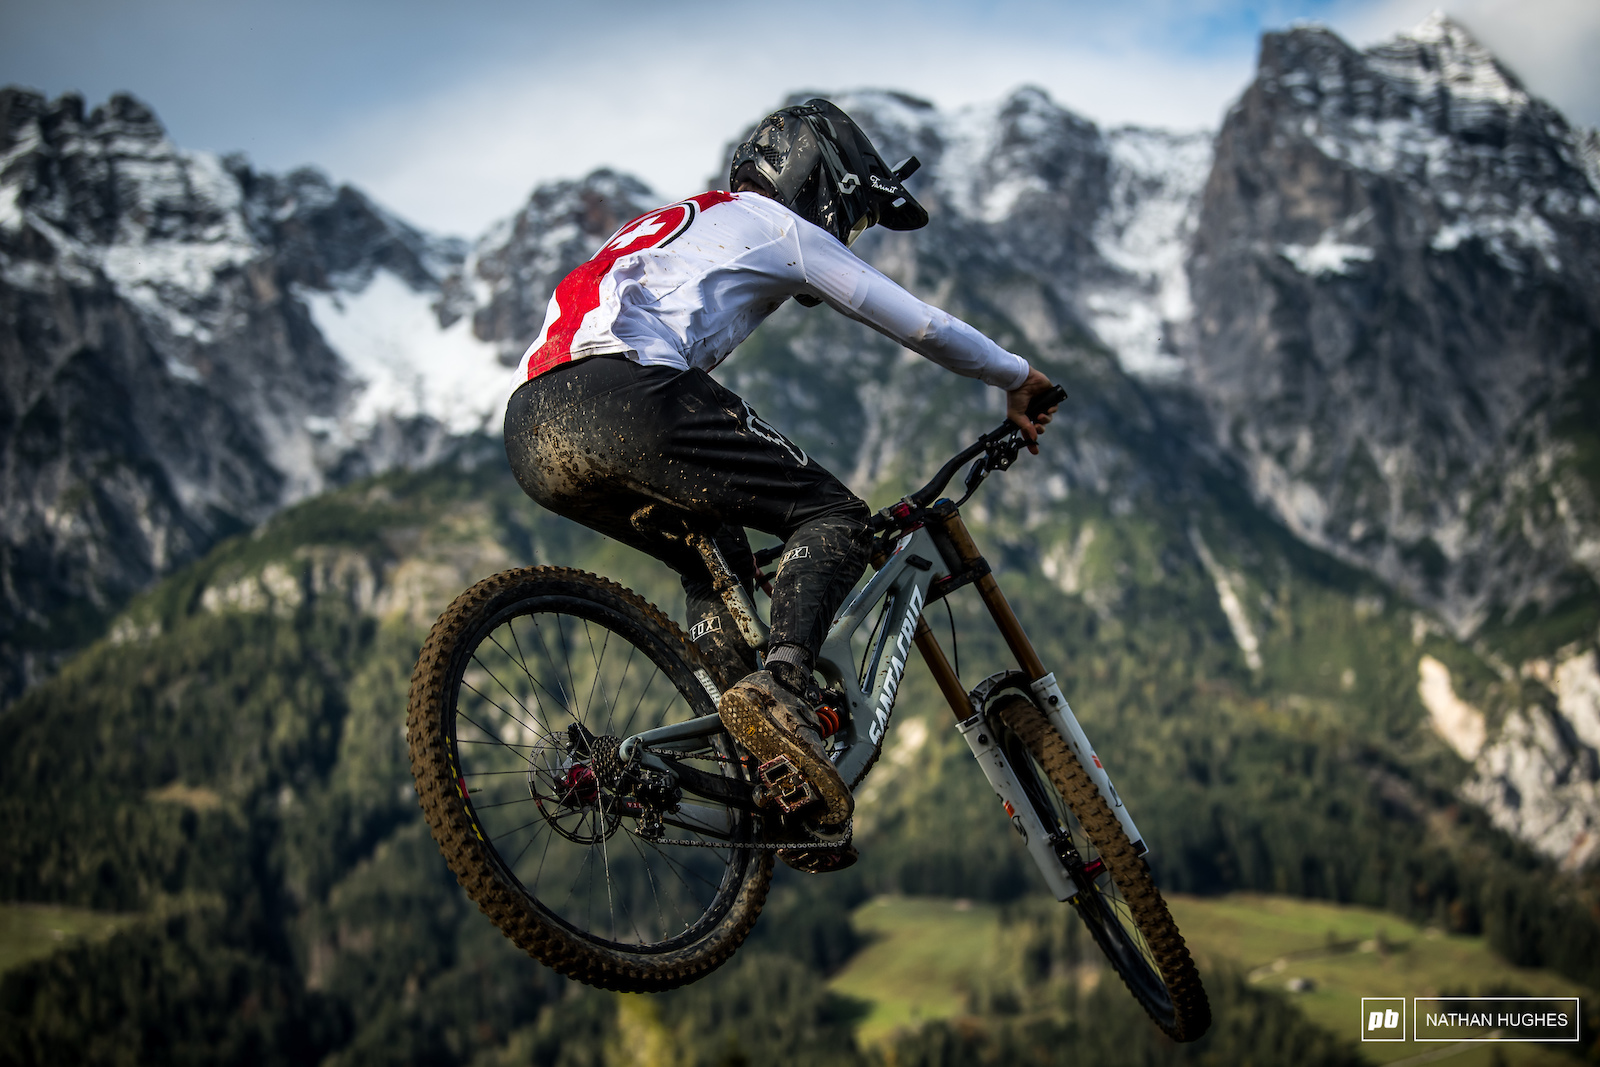 Jerome Caroli repping Switzerland infront of the rival mountains.